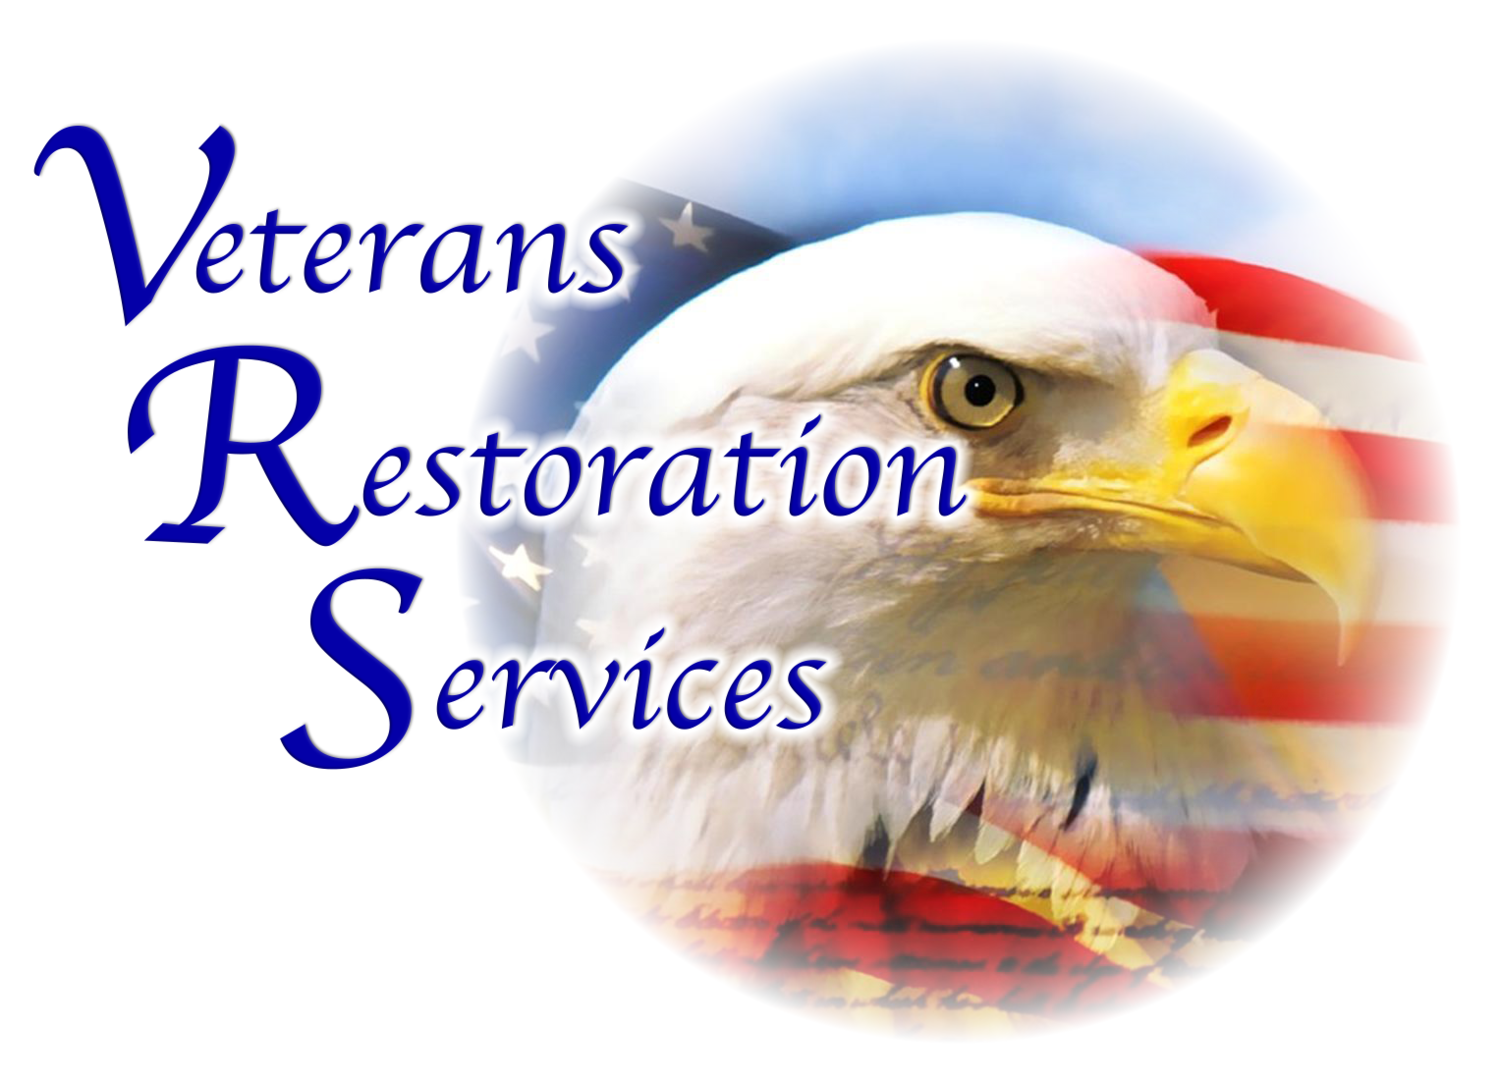 Veterans Restoration Services